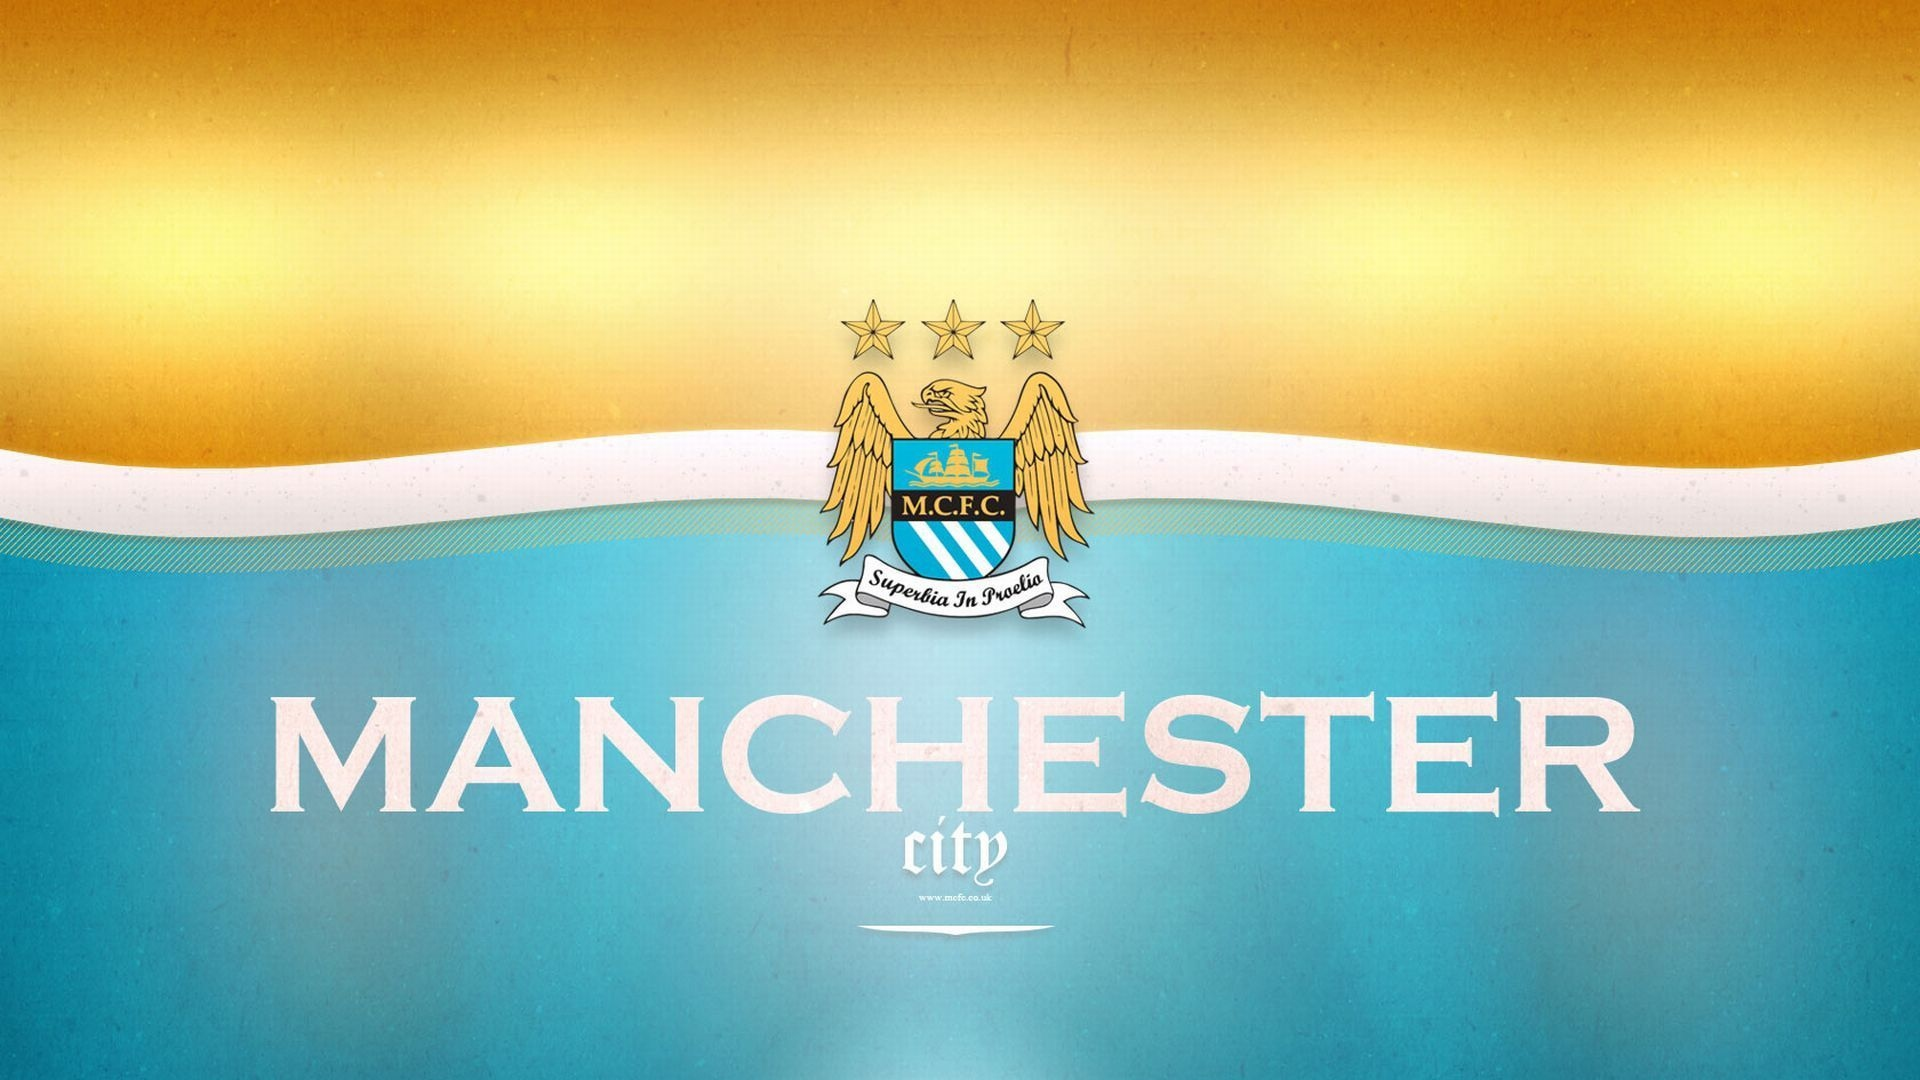 Download wallpaper 1920x1080 manchester united club football manchester united club football voltagebd Choice Image